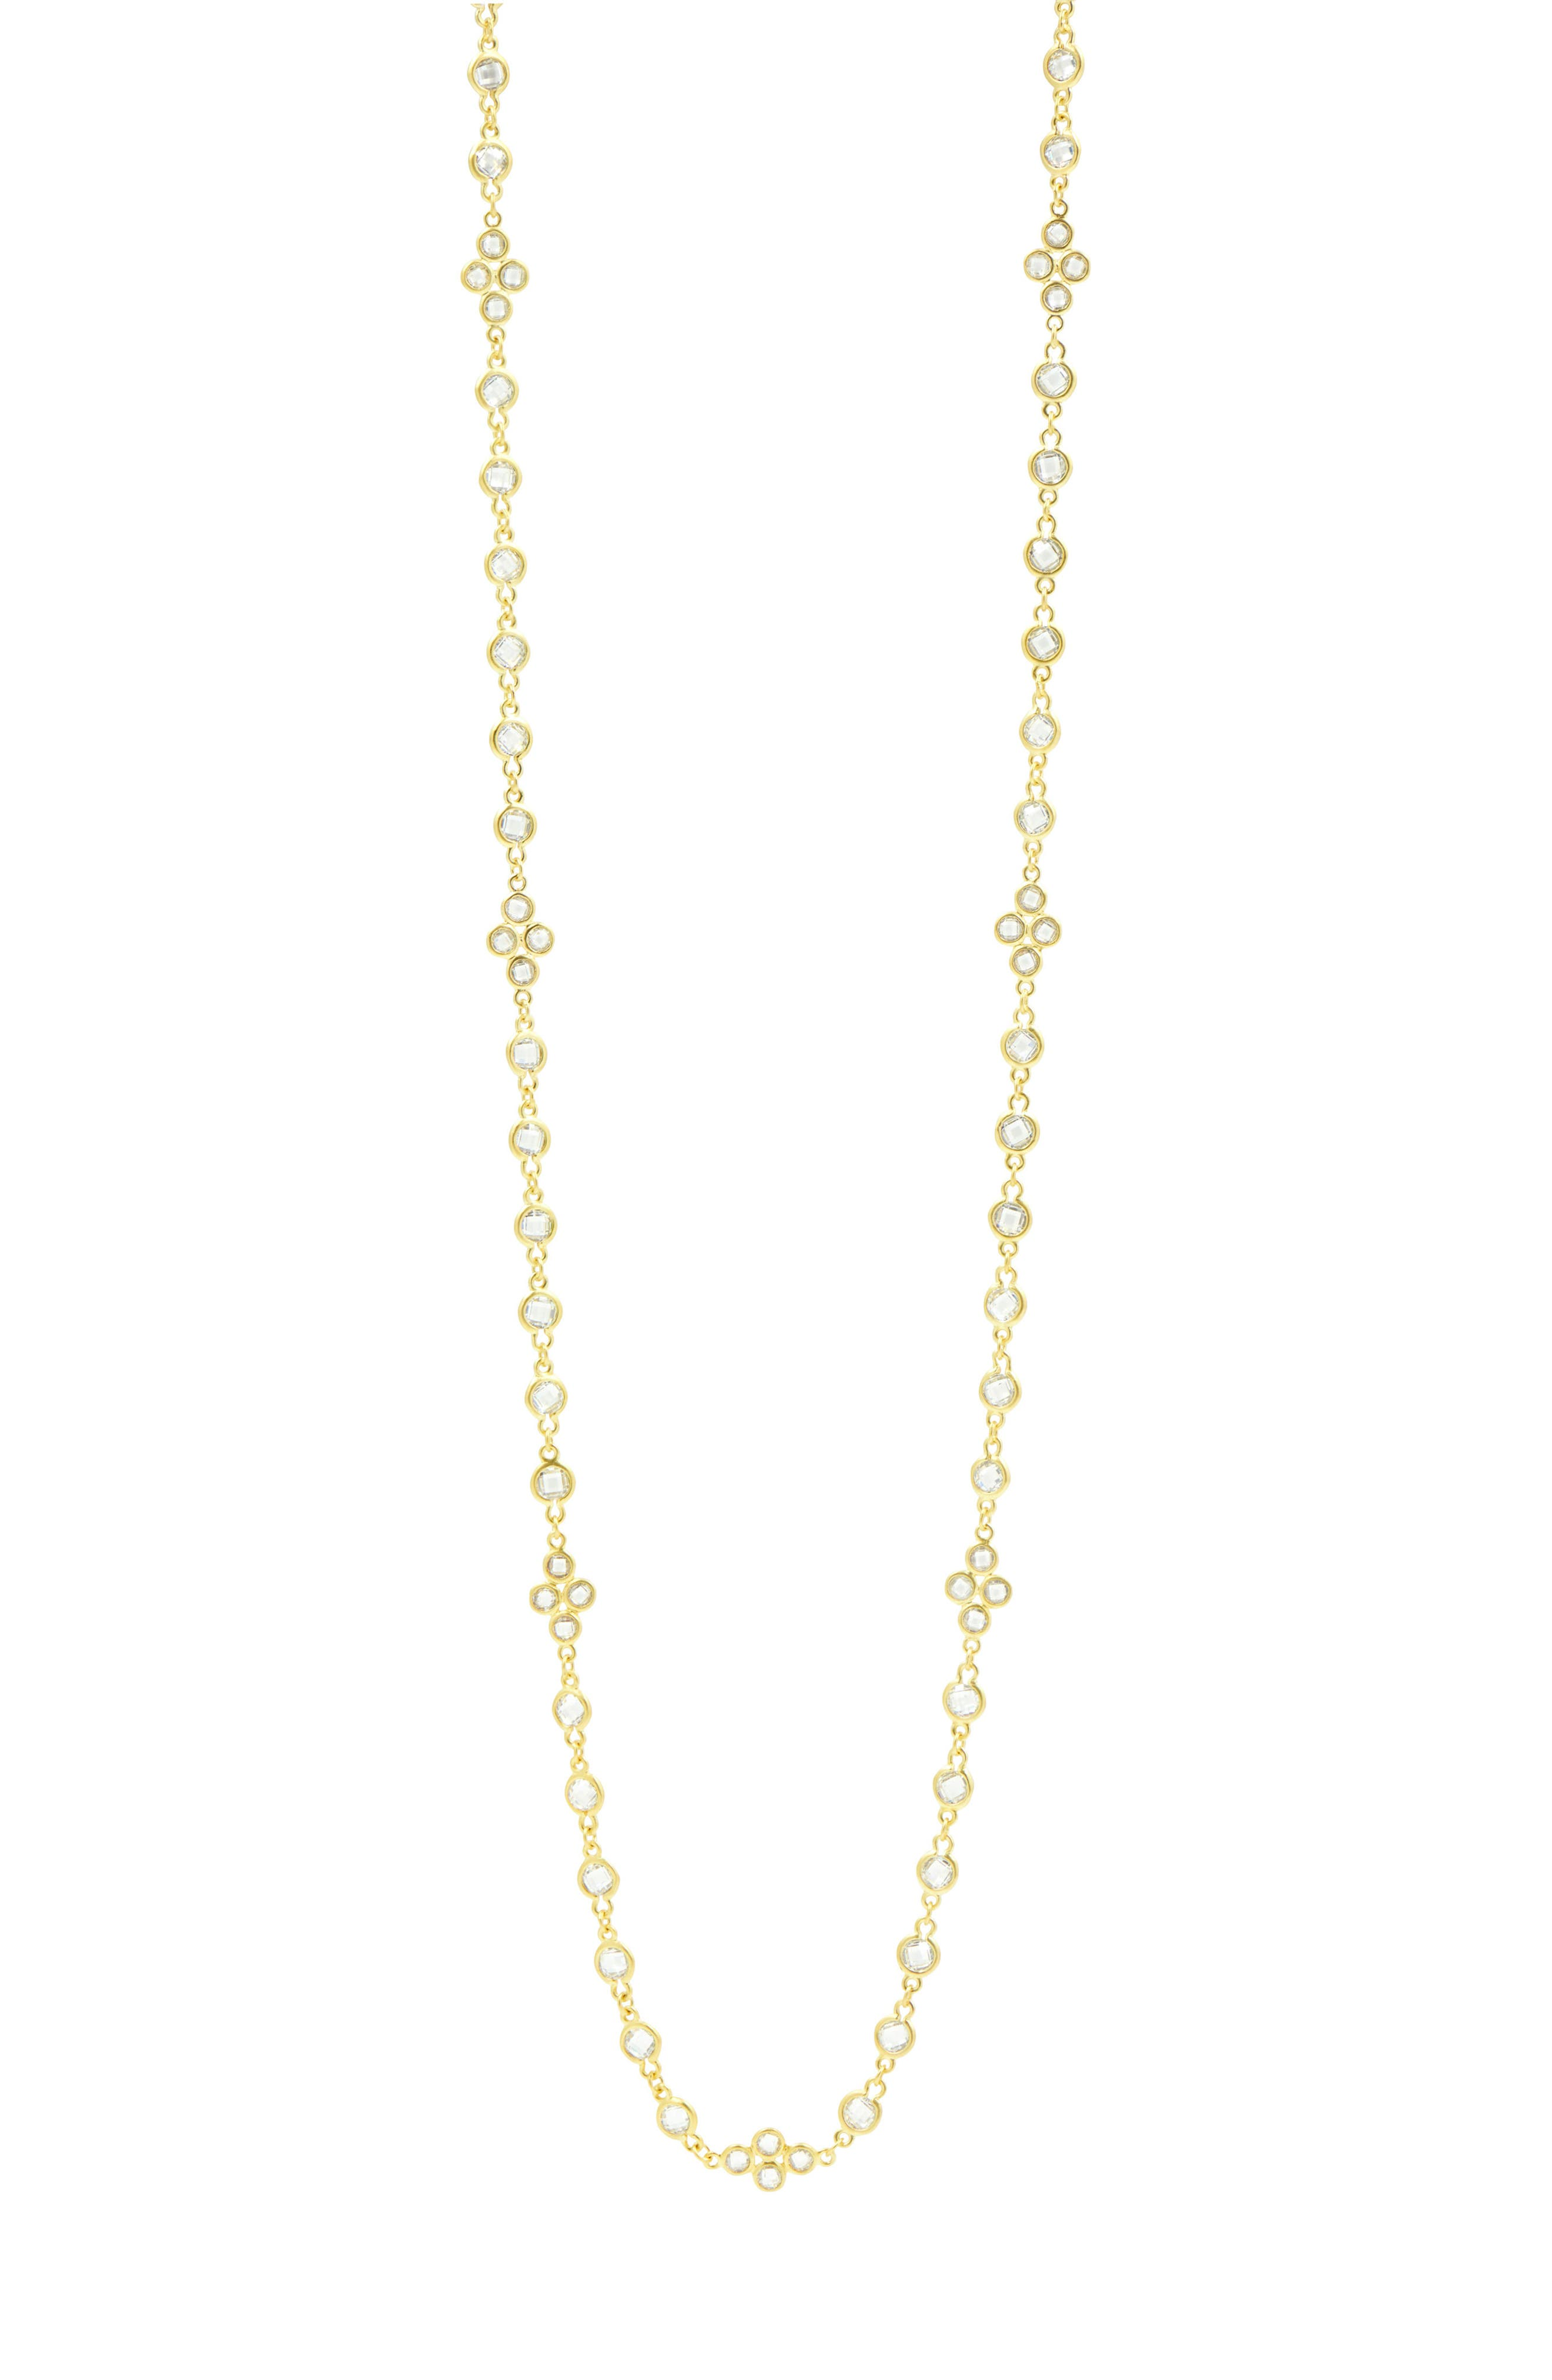 Cubic Zirconia Necklace,                             Alternate thumbnail 3, color,                             Gold/ Clear